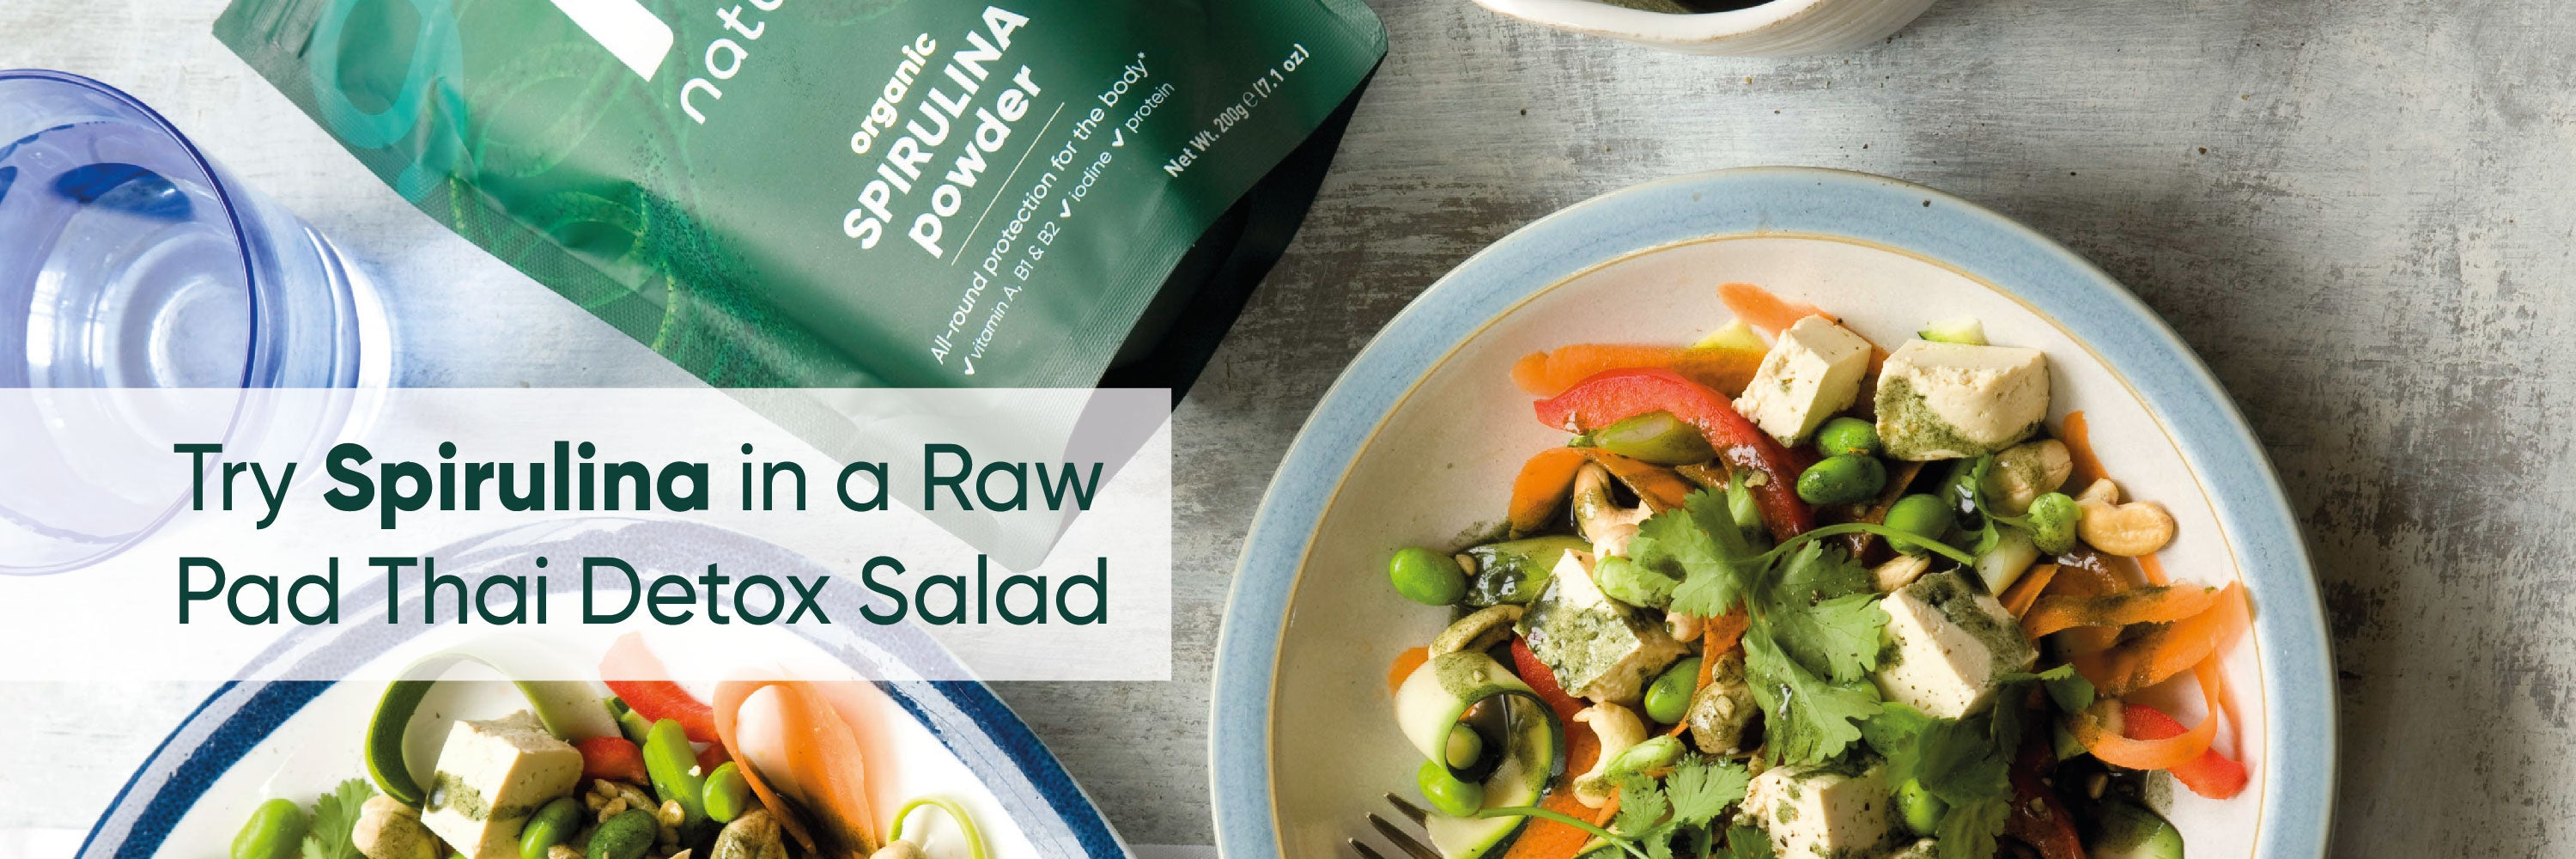 spirulina raw pad thai